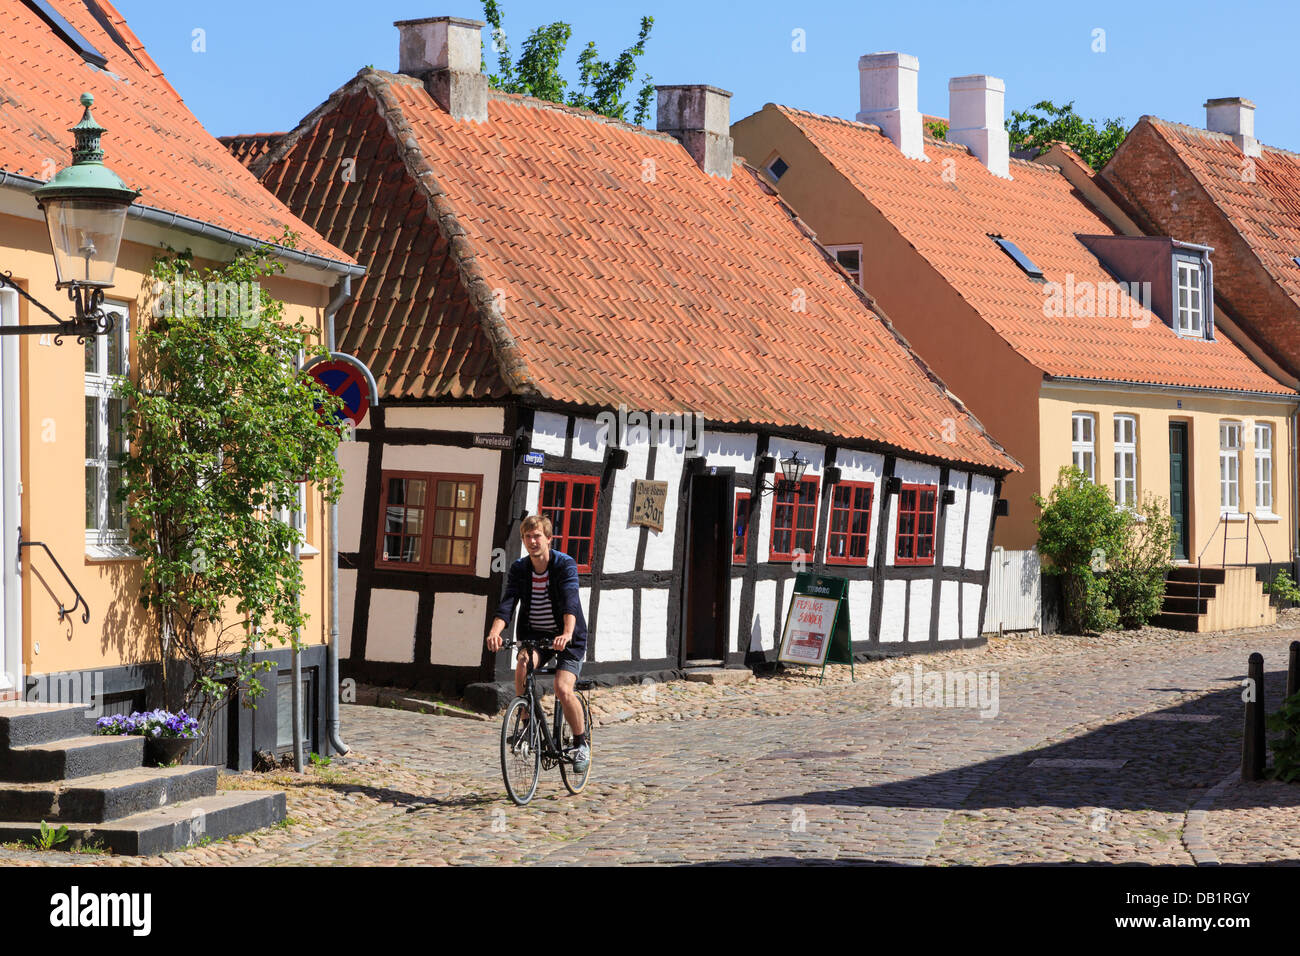 Quaint old Den skæve bar (The Crooked Bar) with man cycling on cobbles along cobbled street. Overgade Ebeltoft - Stock Image